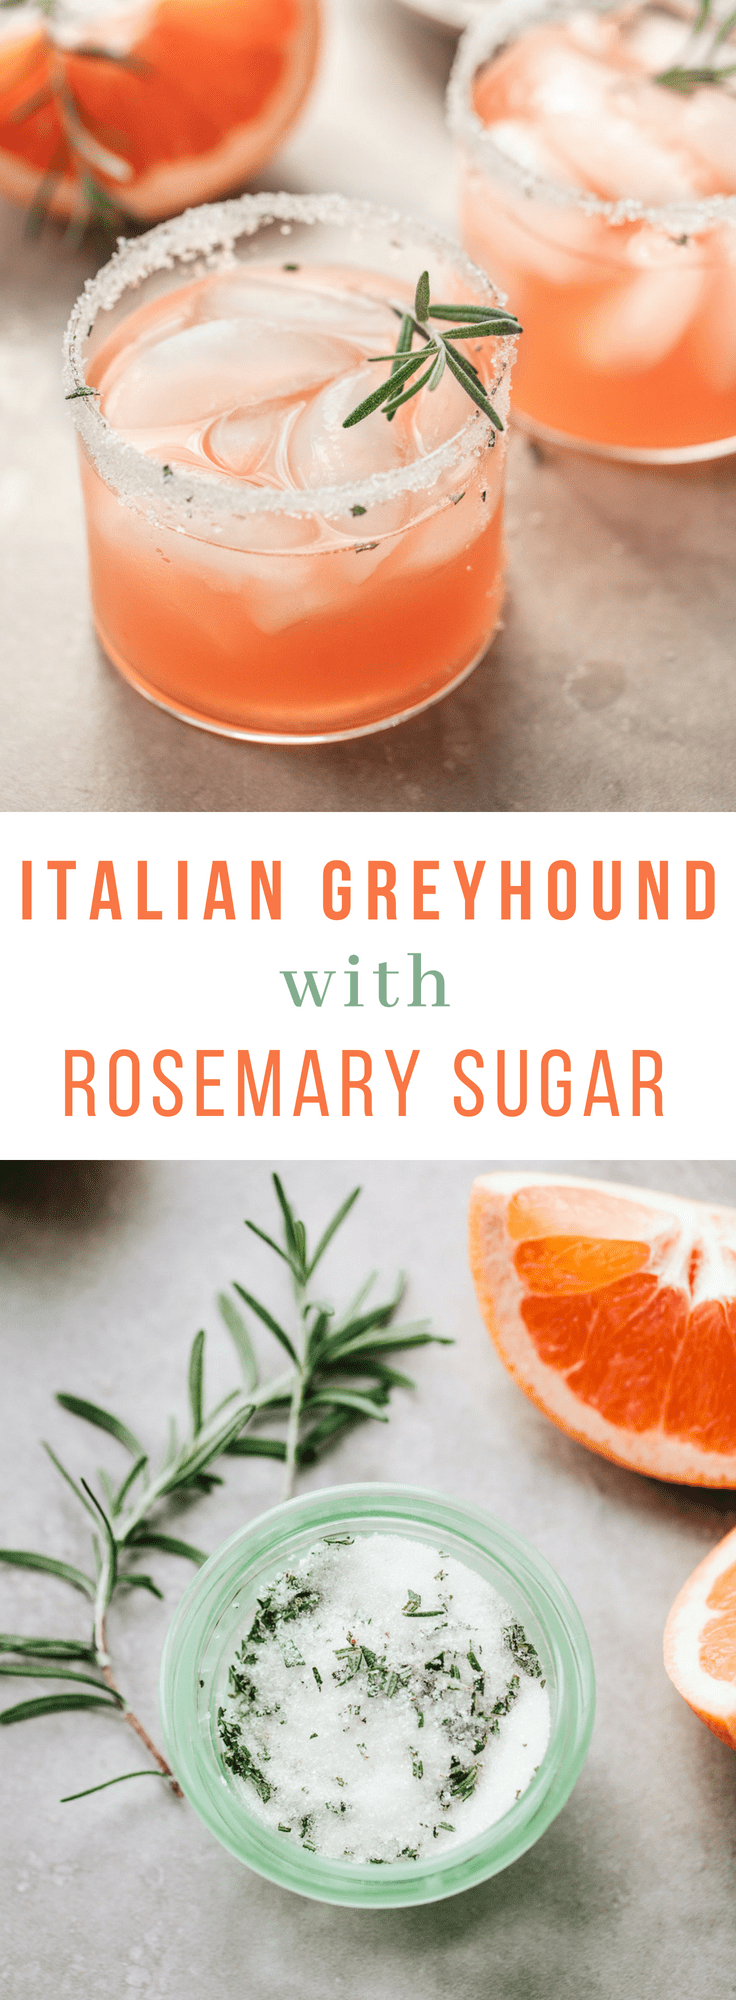 Italian Gin Greyhound Cocktail with Rosemary Sugar #grapefruit #drinks #cocktails #gin #aperol #party #recipe